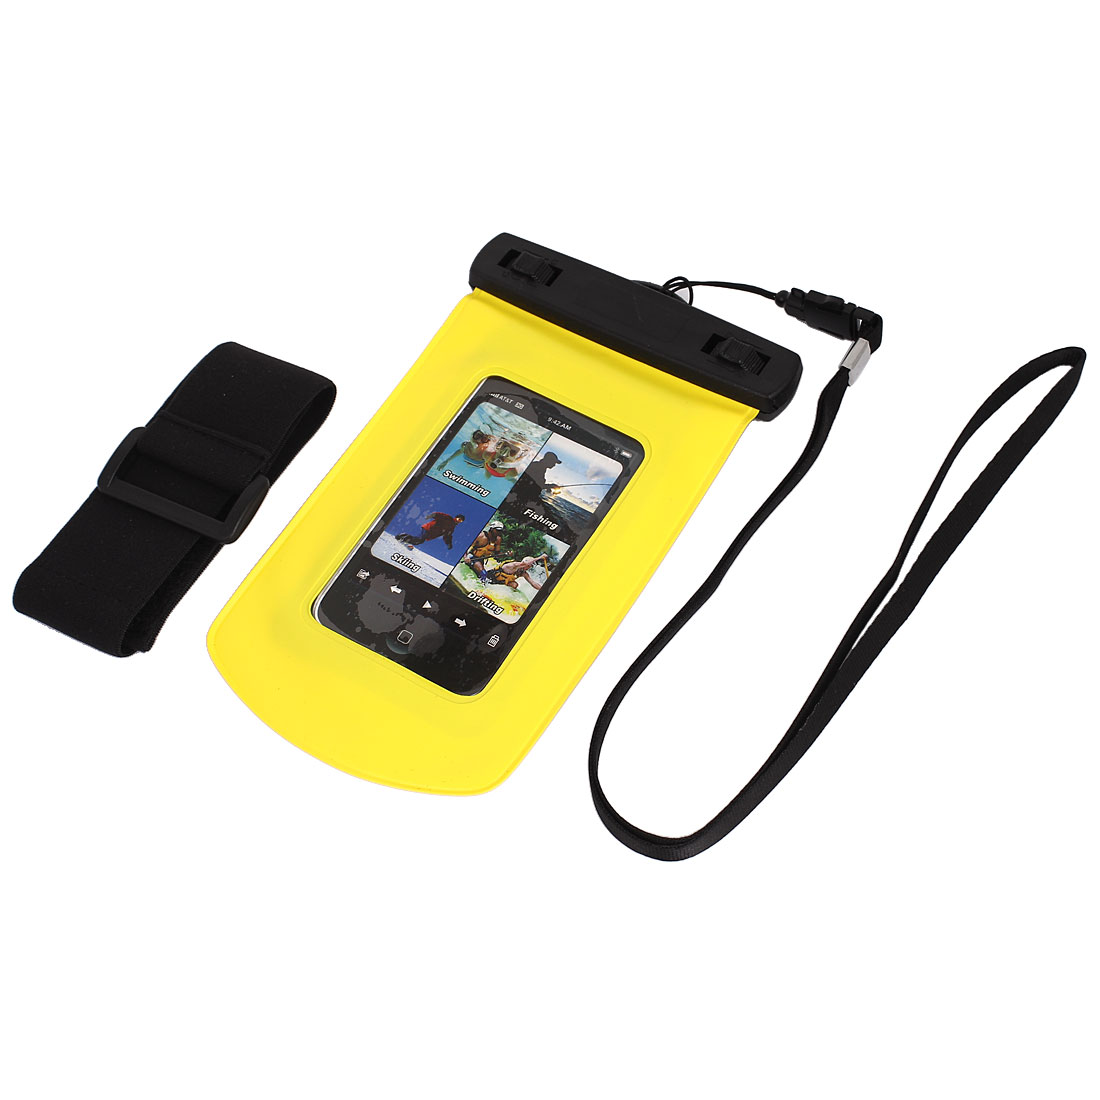 Waterproof Bag Case Holder Protector Yellow for iPhone 4G w Armband Strap